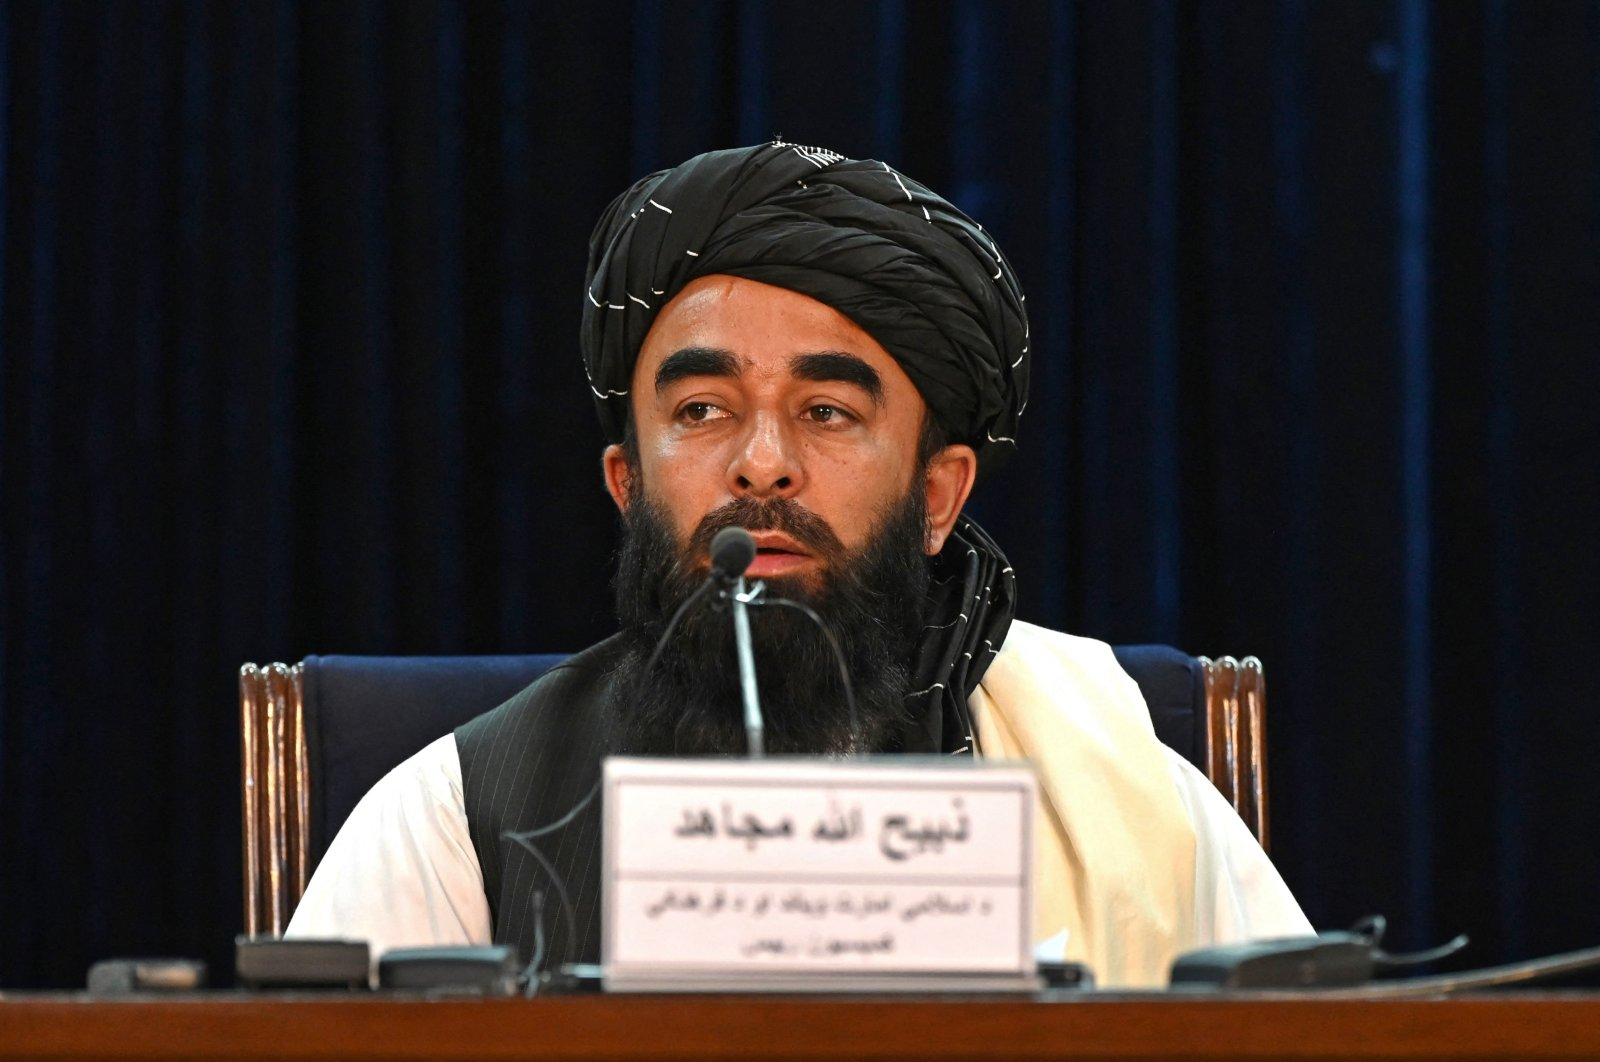 Taliban spokesperson Zabihullah Mujahid speaks during a press conference in Kabul on Sept. 6, 2021. (AFP Photo)